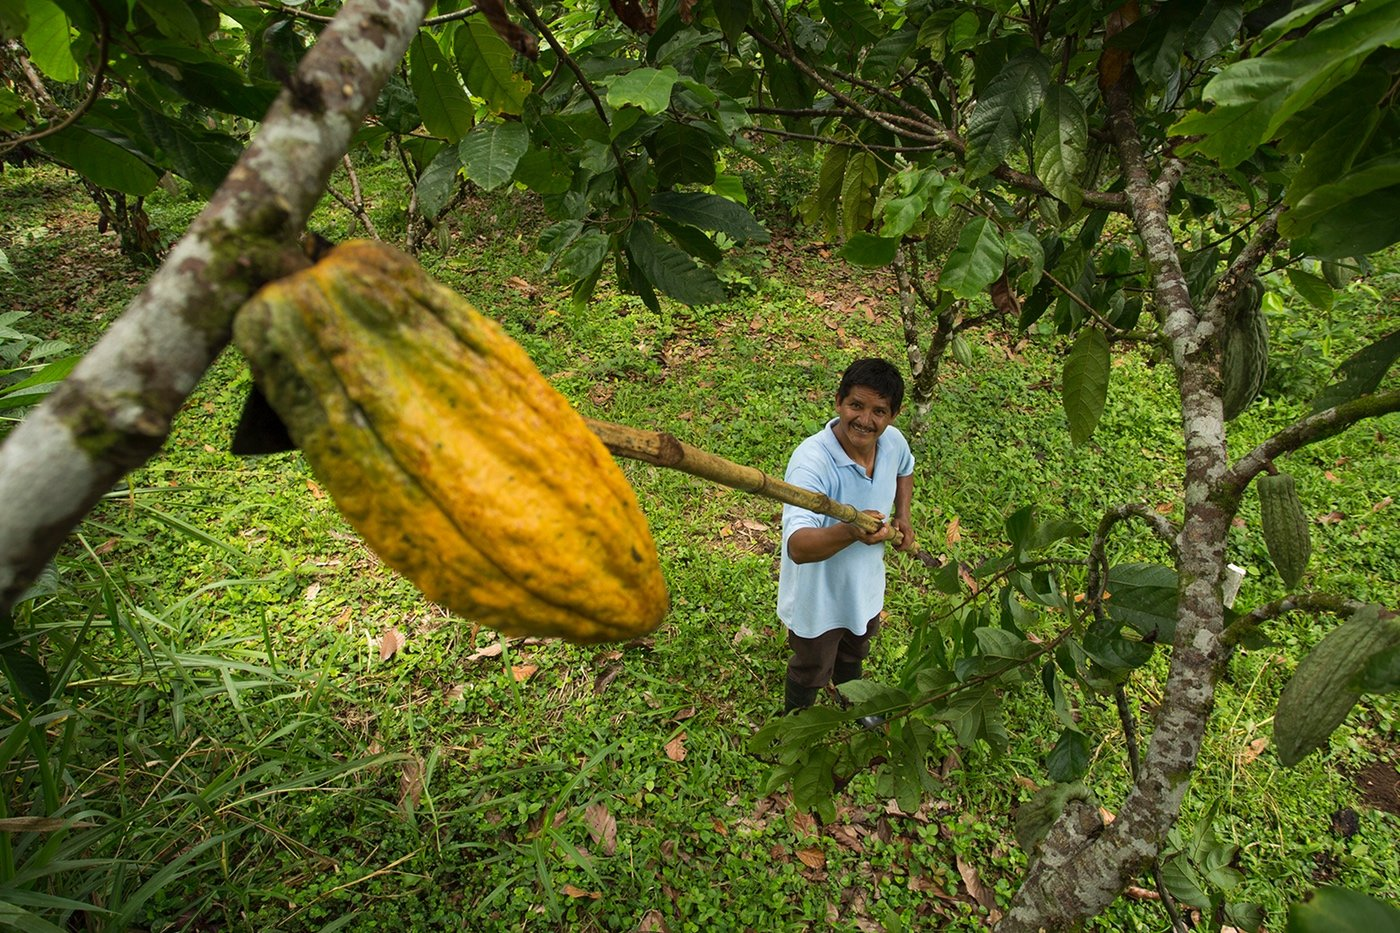 Child looking up at cocoa pod